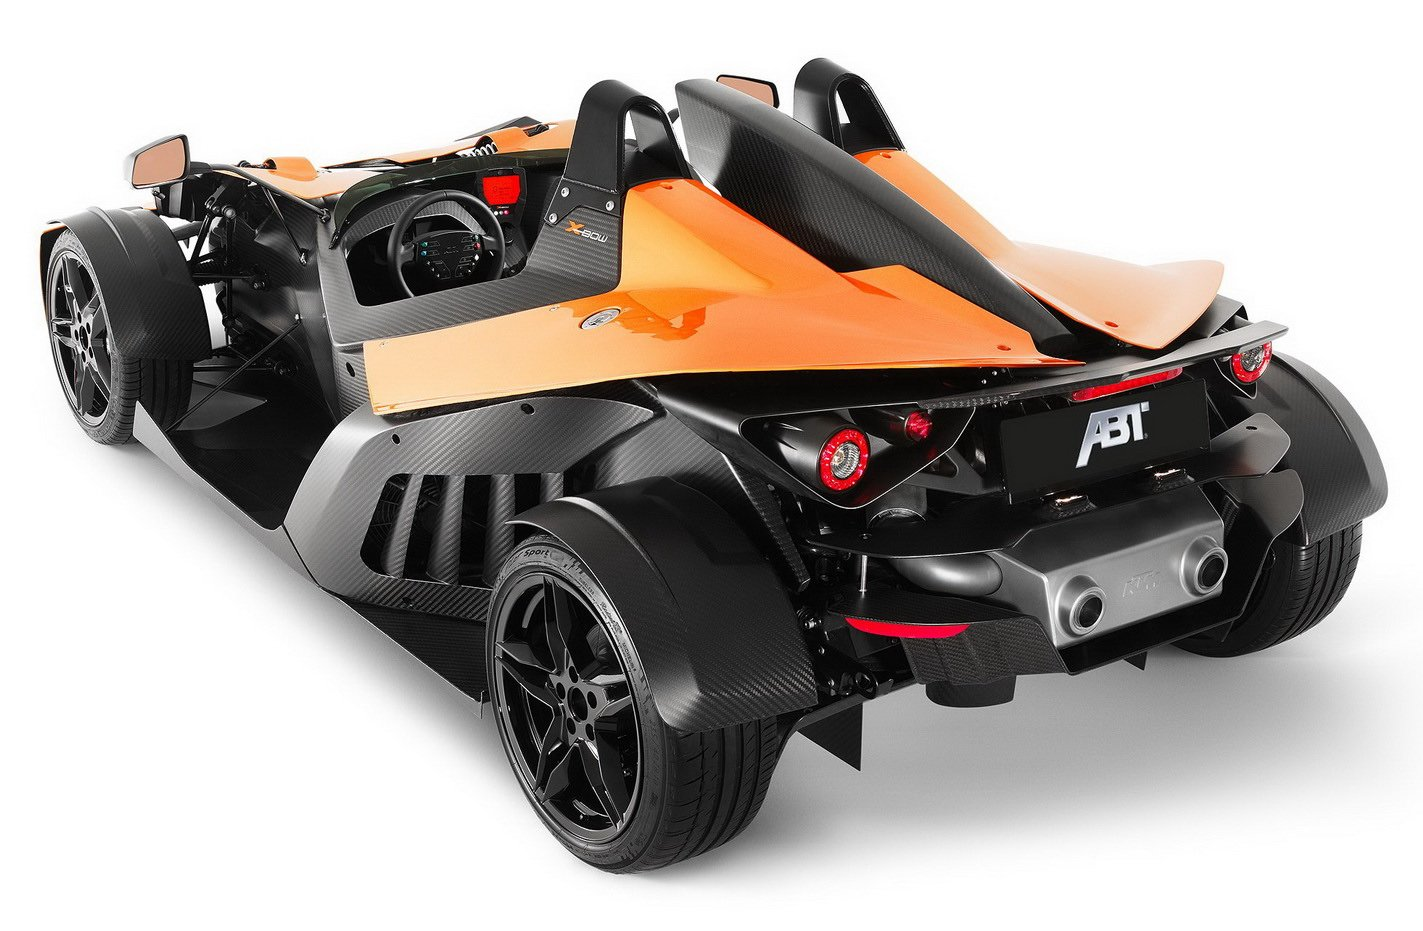 New The Motoroad Ktm X Bow The Ktm Car On This Month